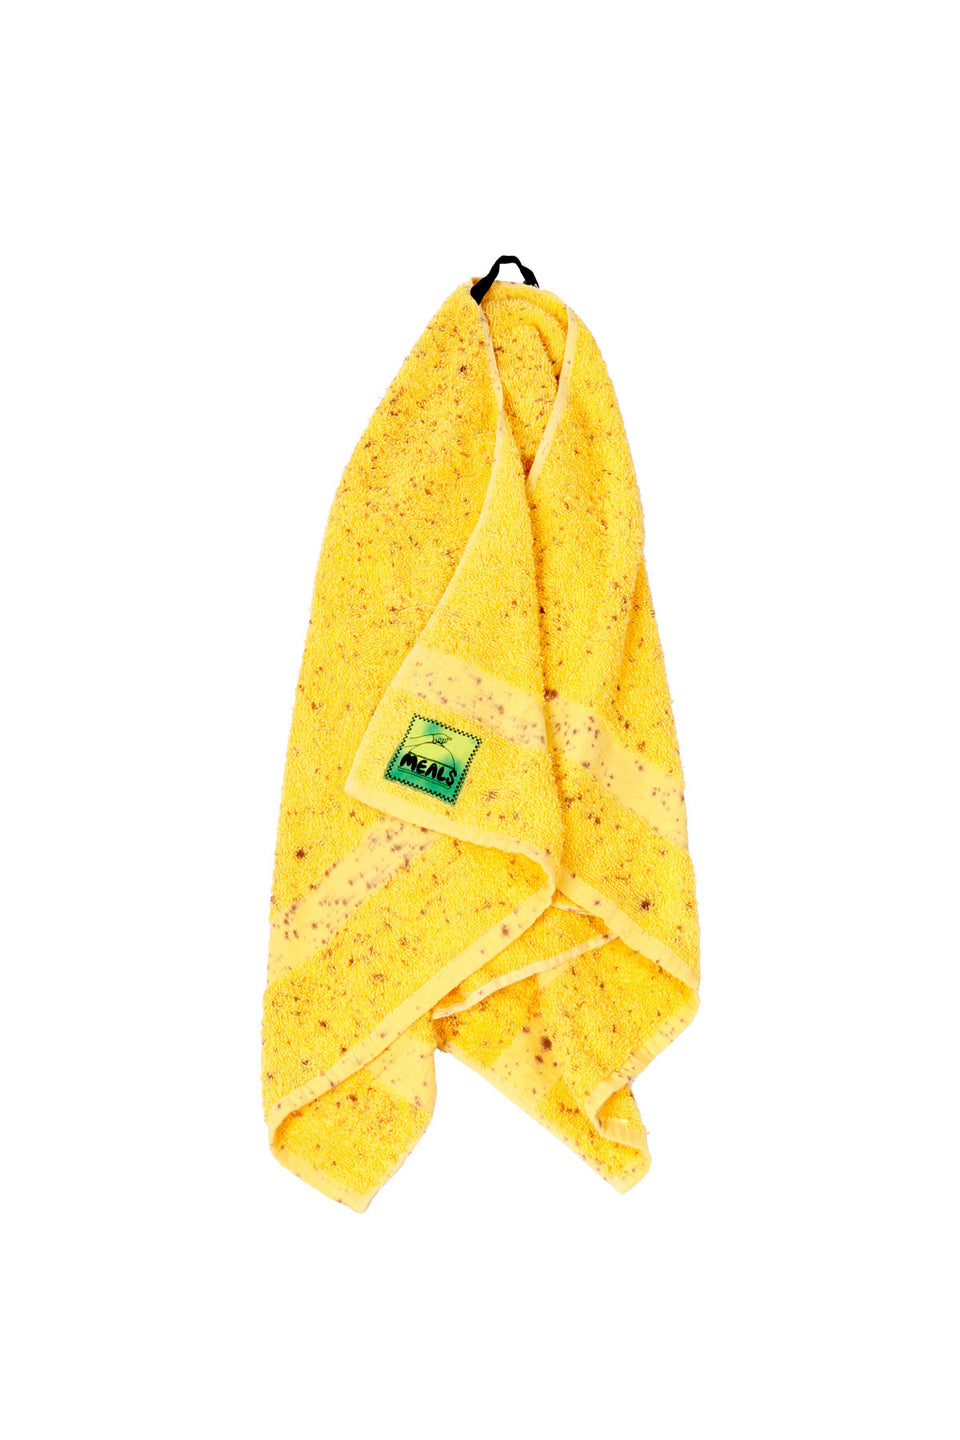 #1 Banana Bath Towel